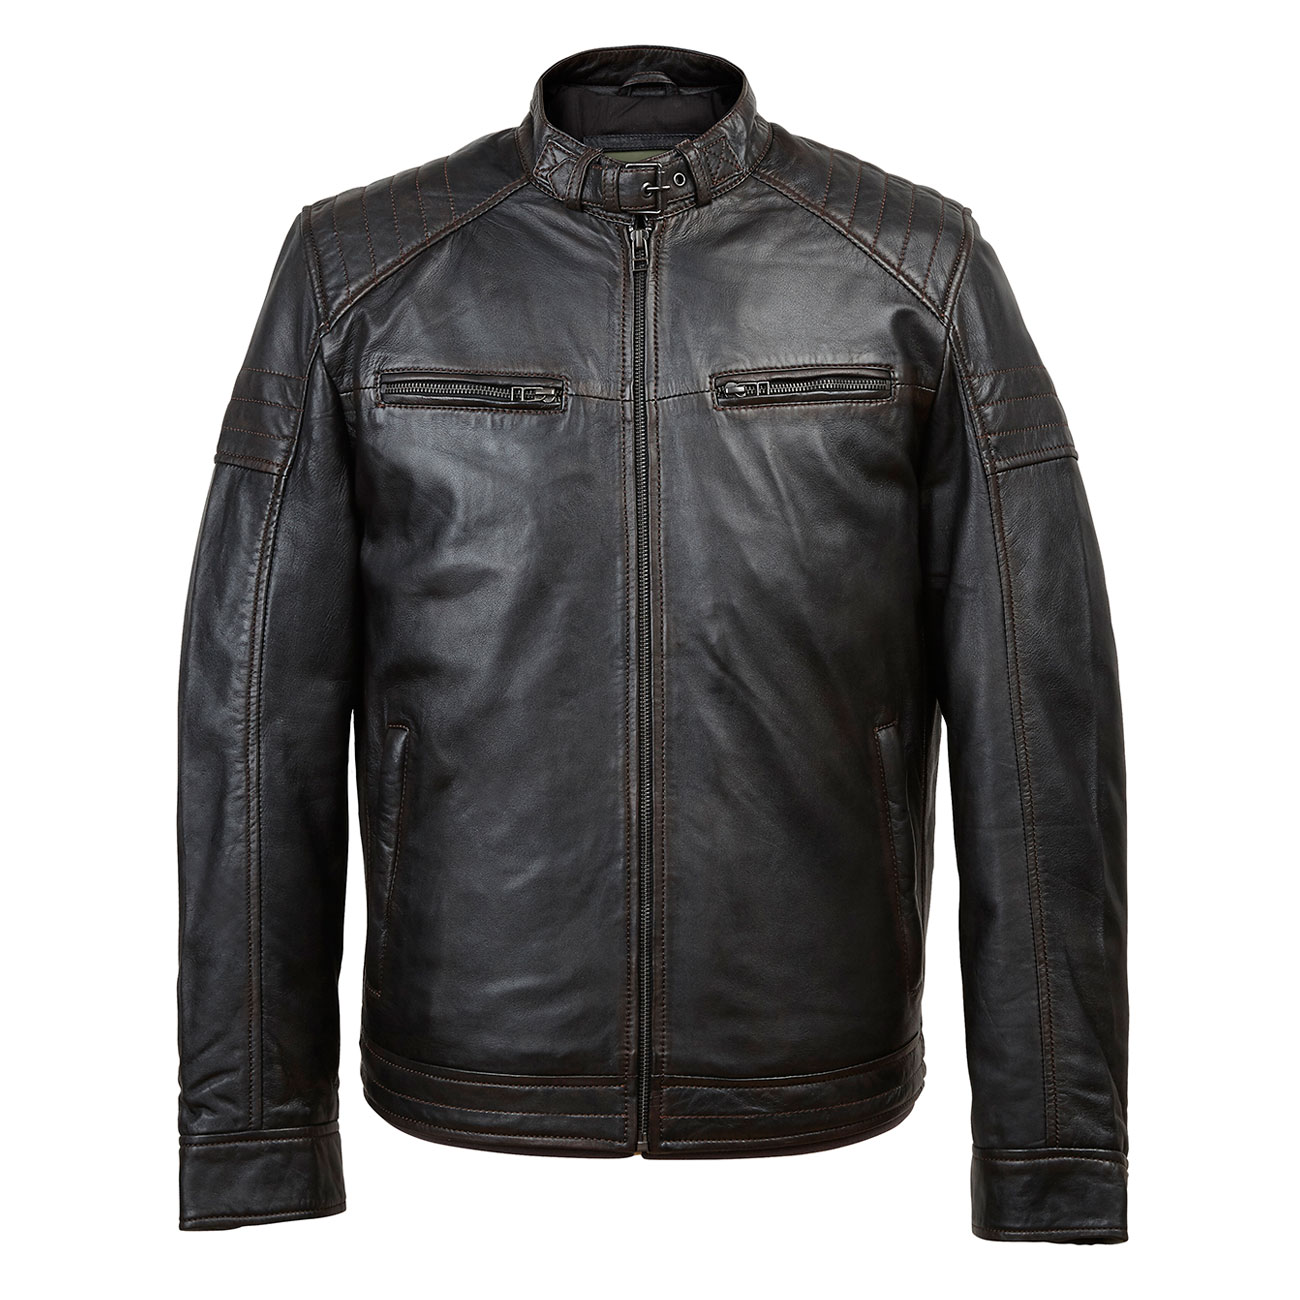 Men's Classic Leather Jackets